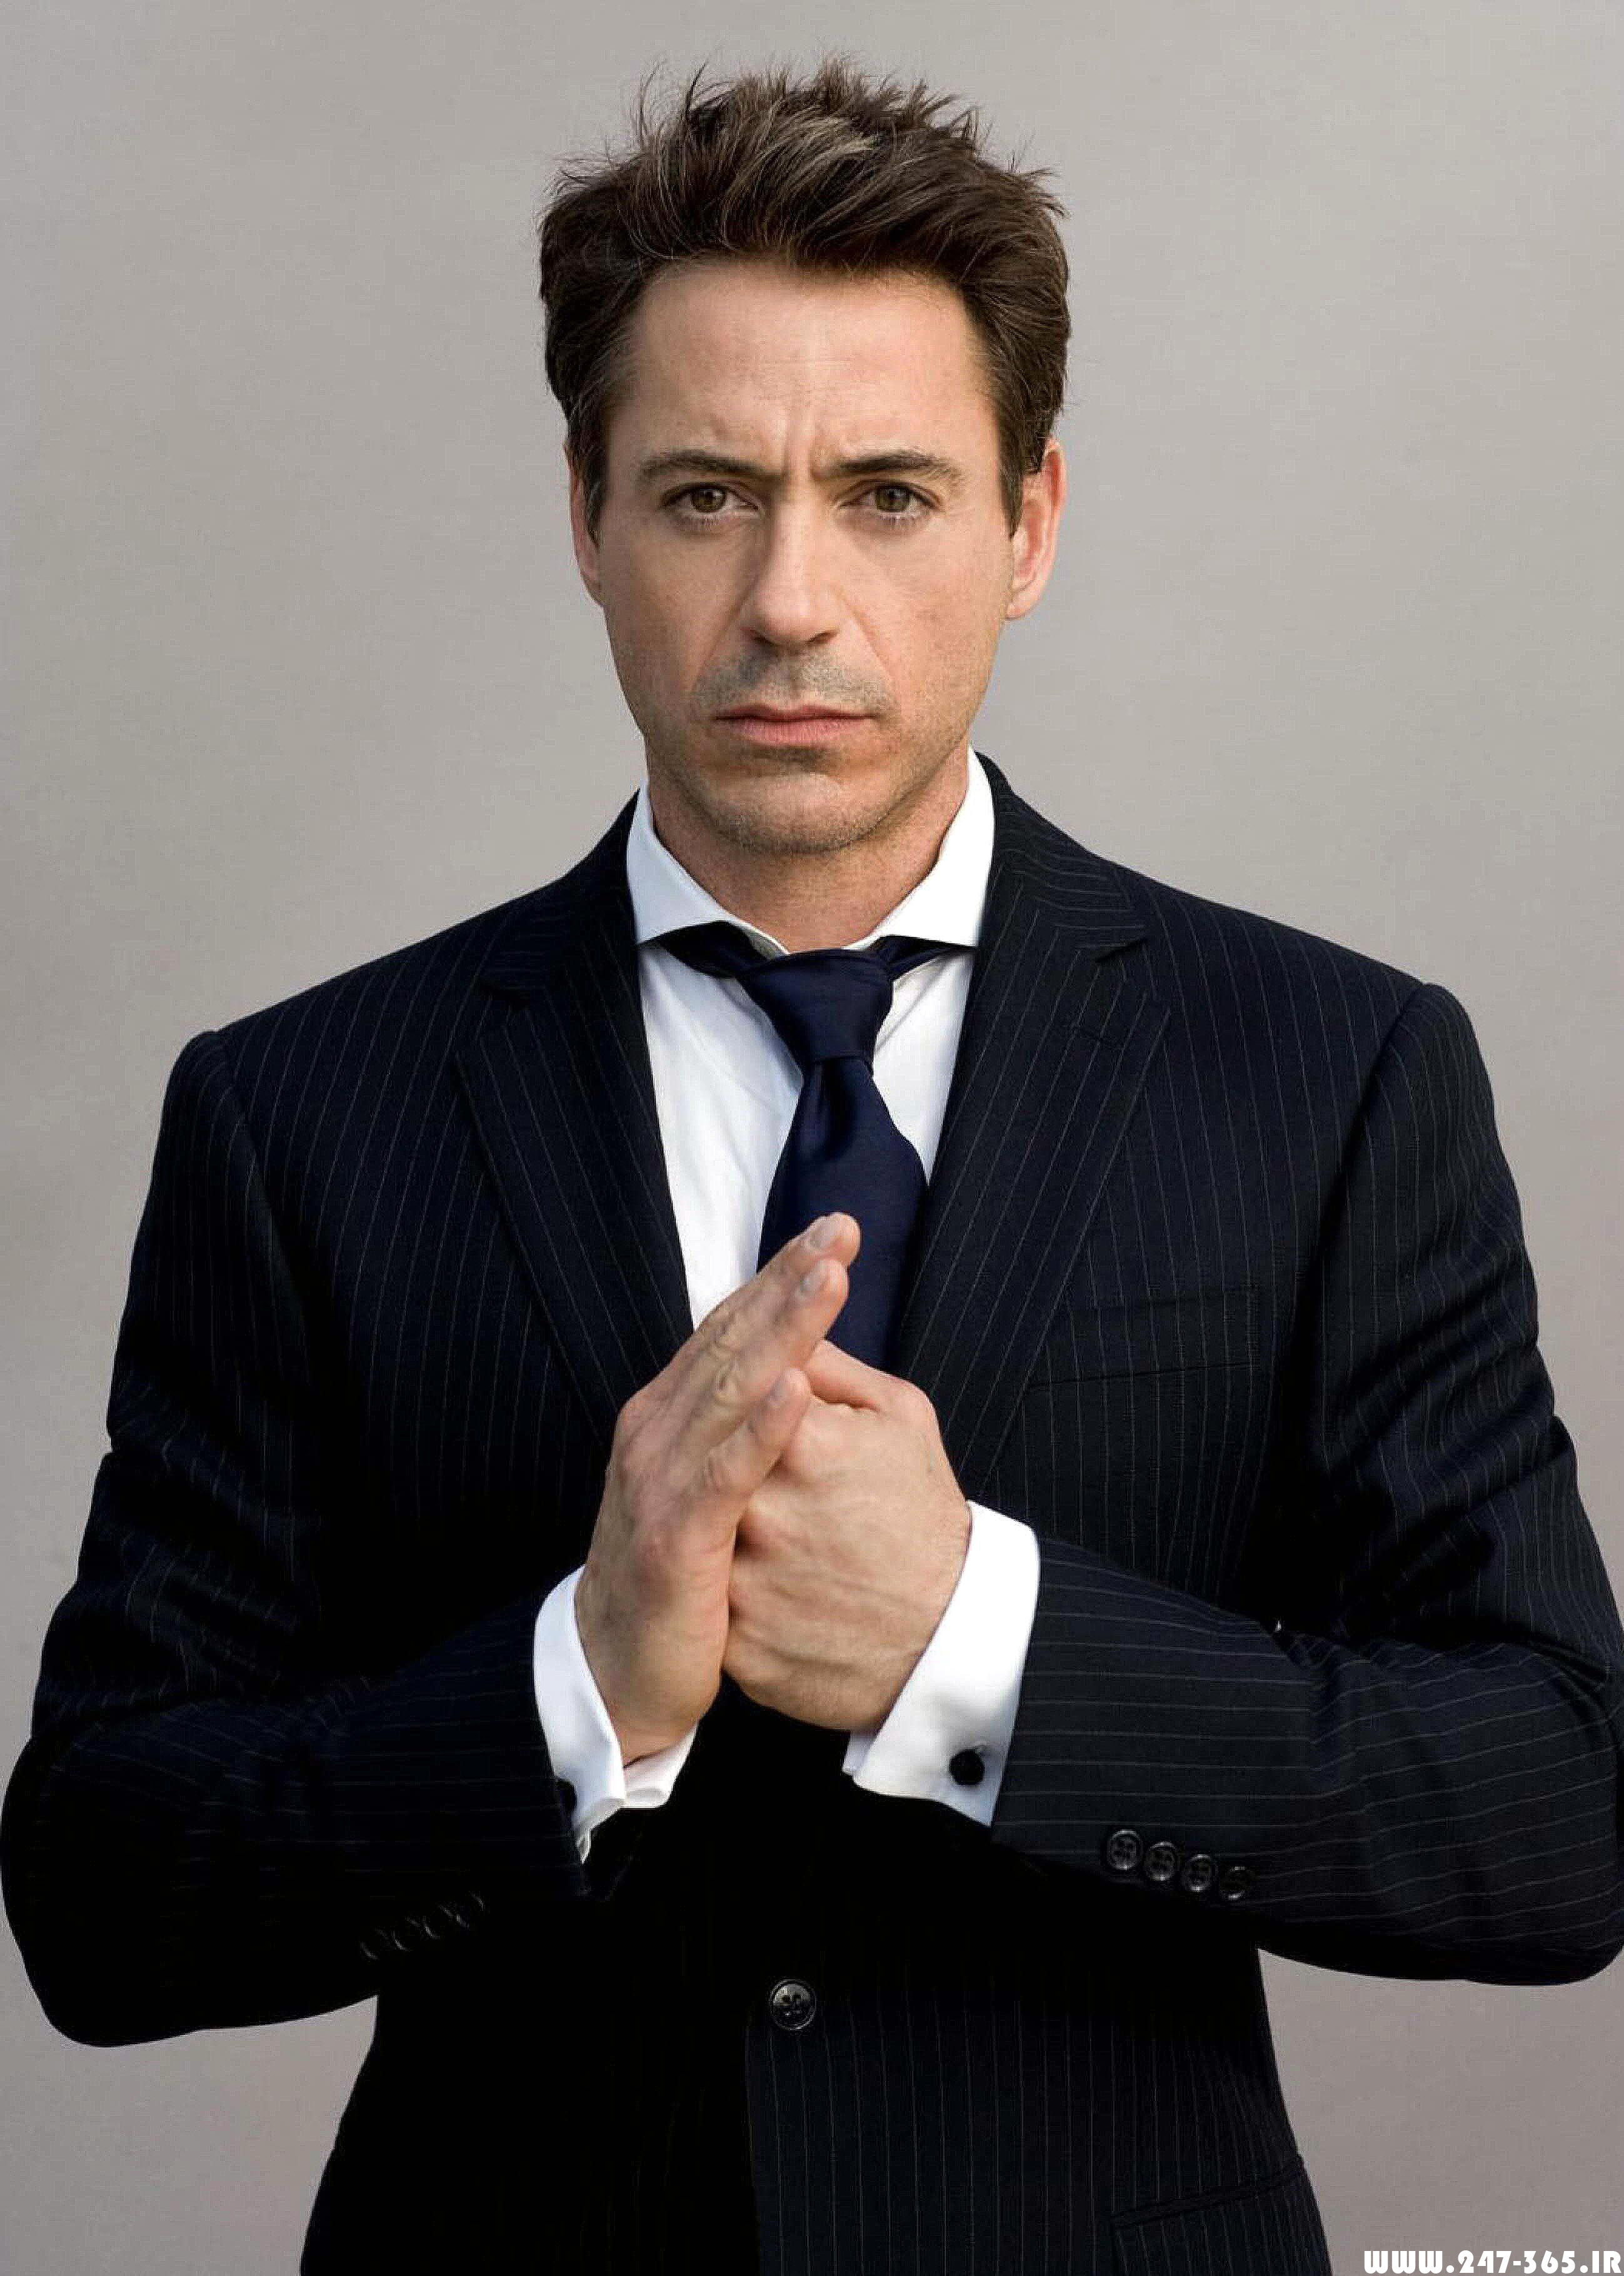 http://dl.247-365.ir/pic/celebrity/robert_downey_jr_3/Robert_Downey_Jr_3_11.jpg